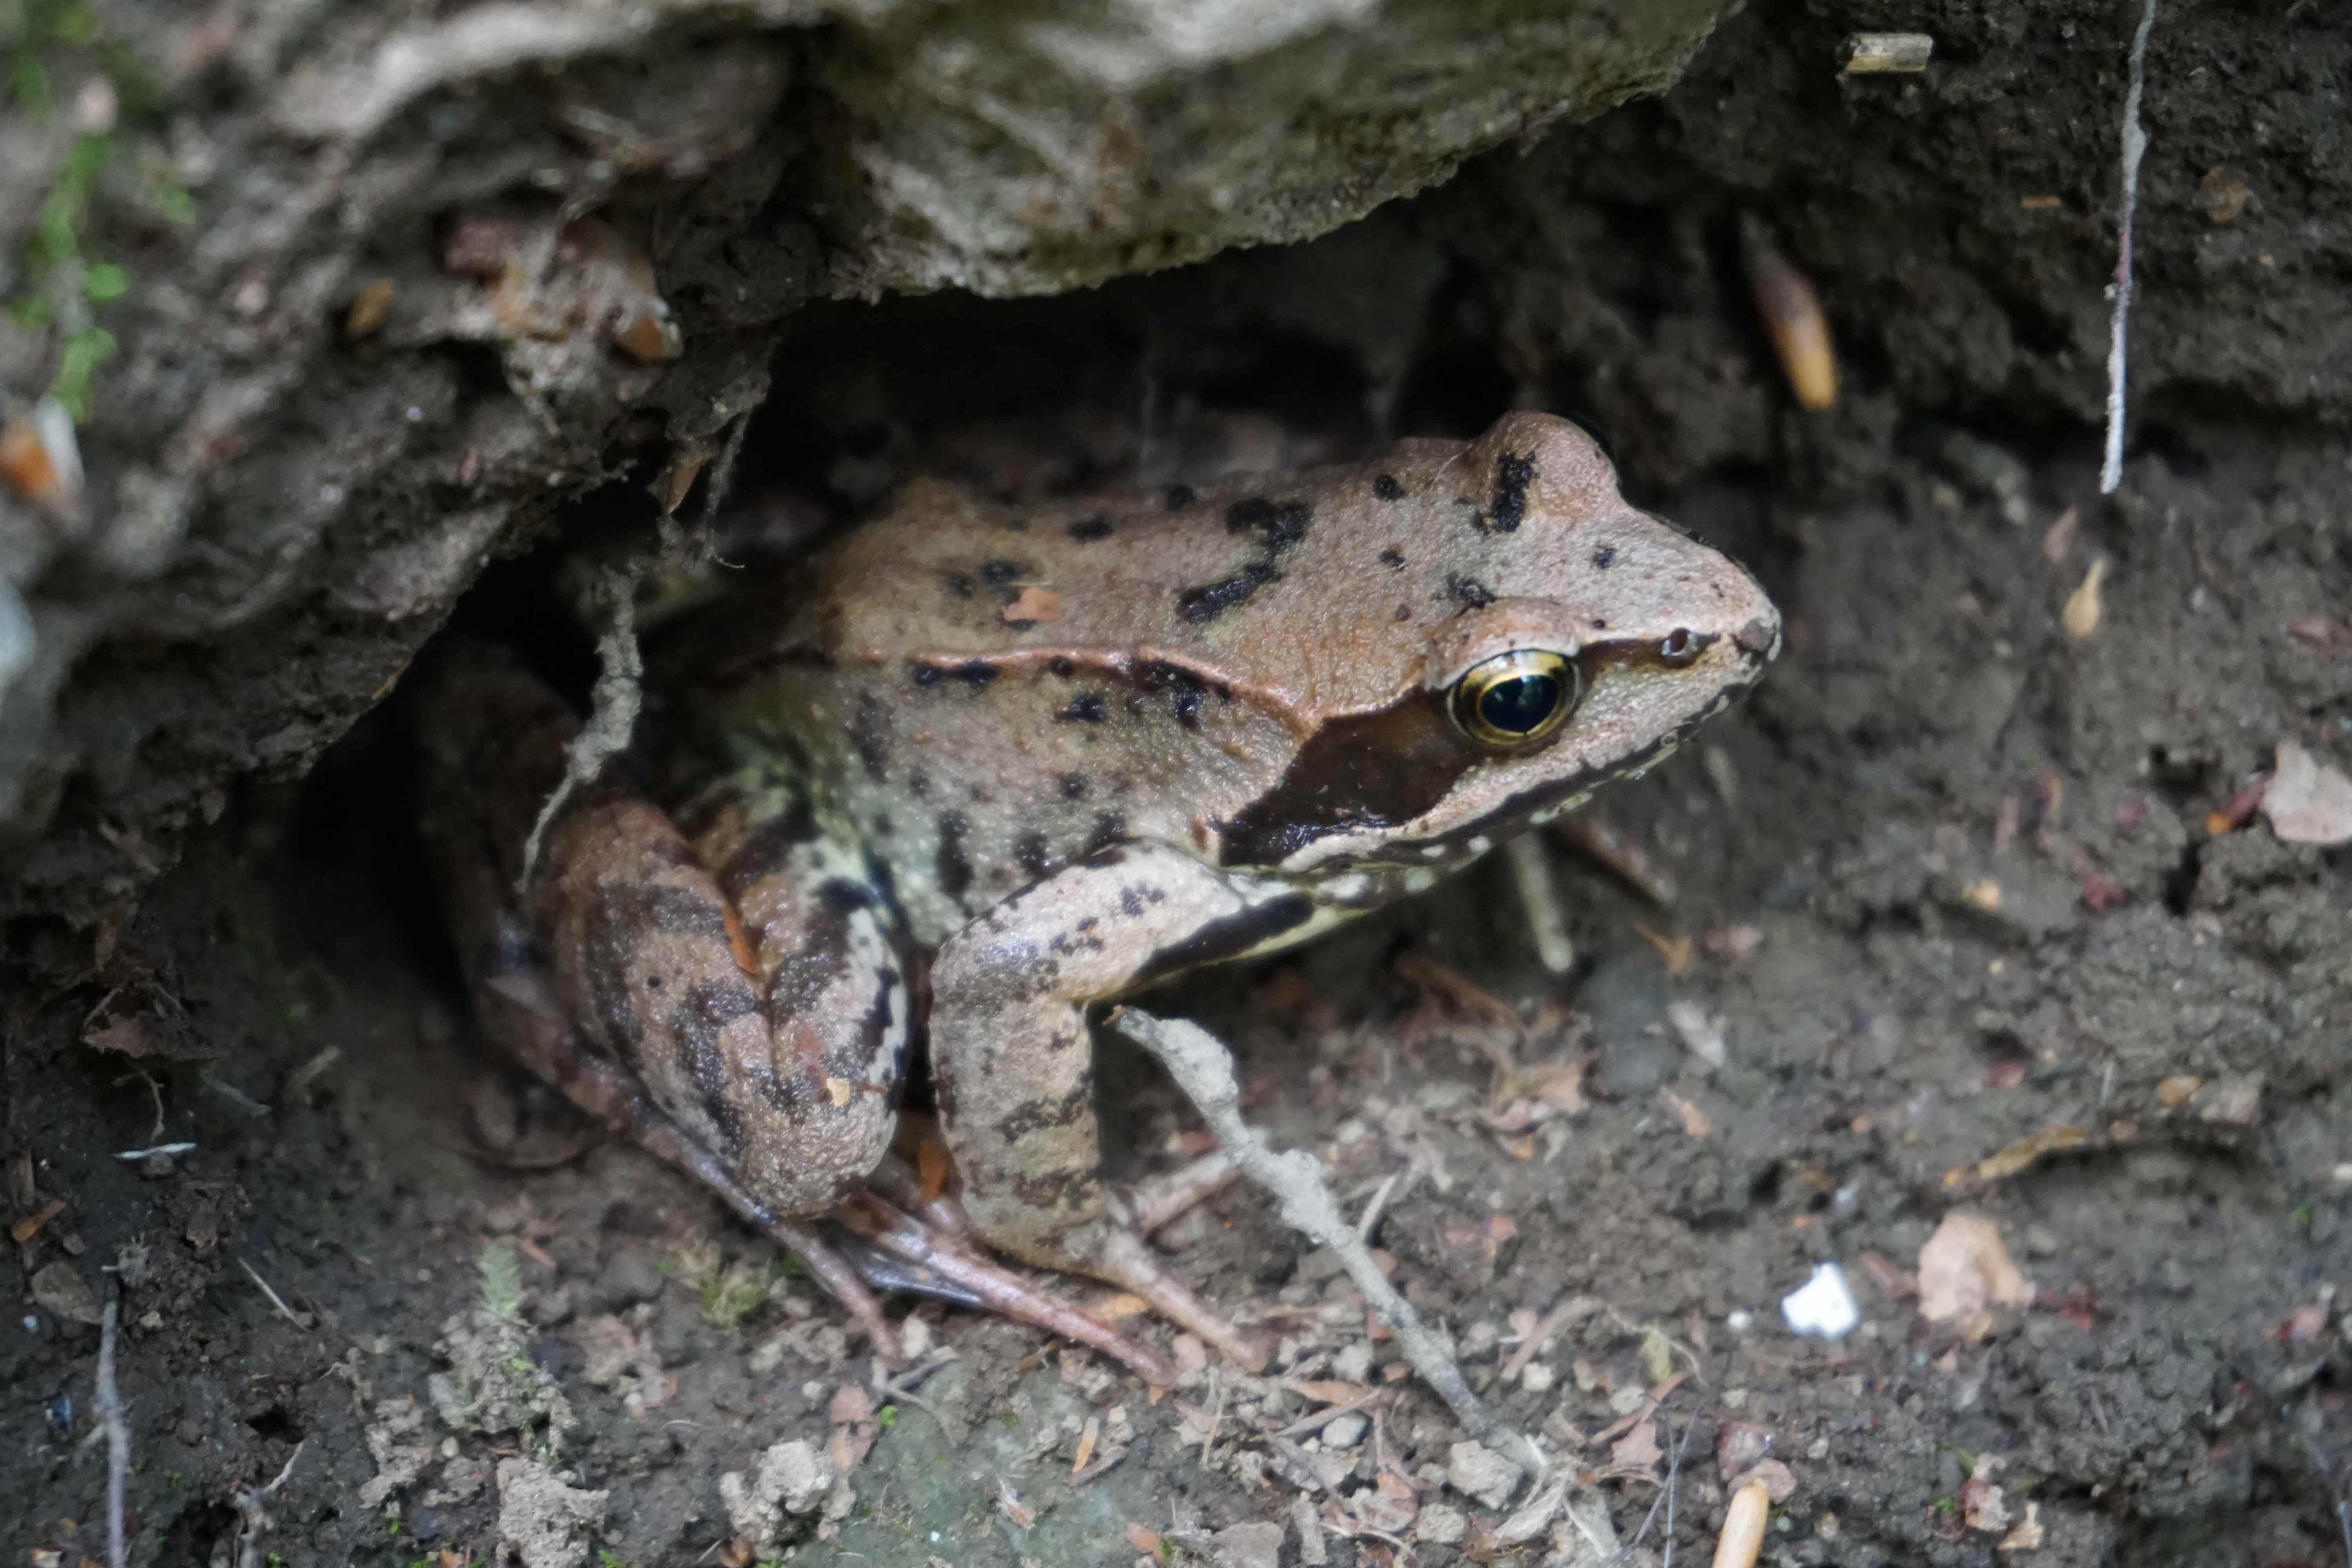 Large toad crouching under a mossy bank in the mud